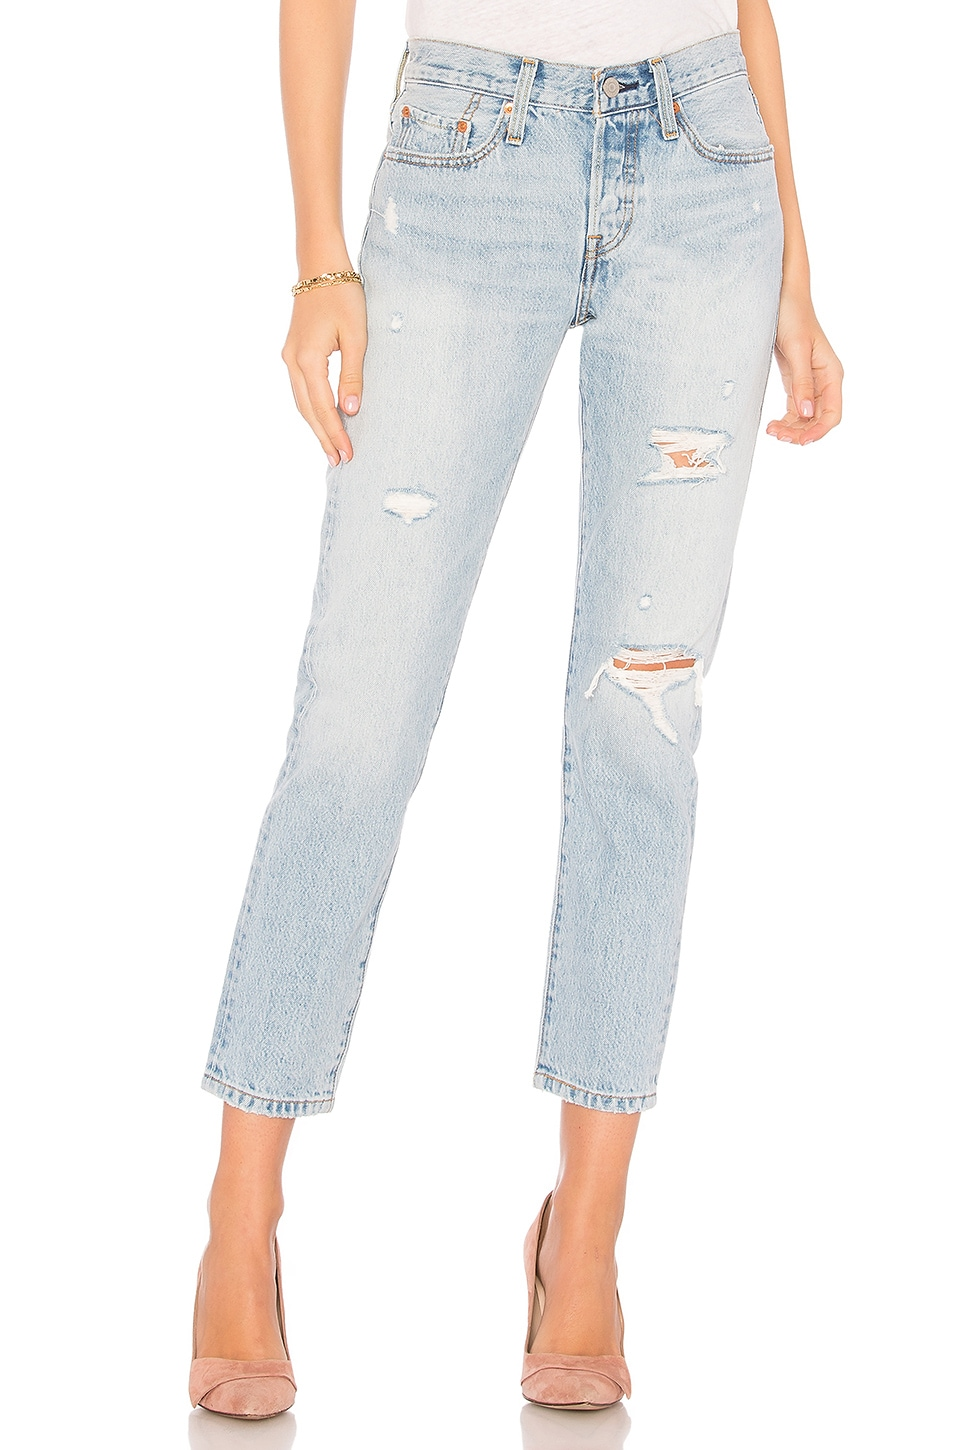 LEVI'S 501 Taper in So Called Life